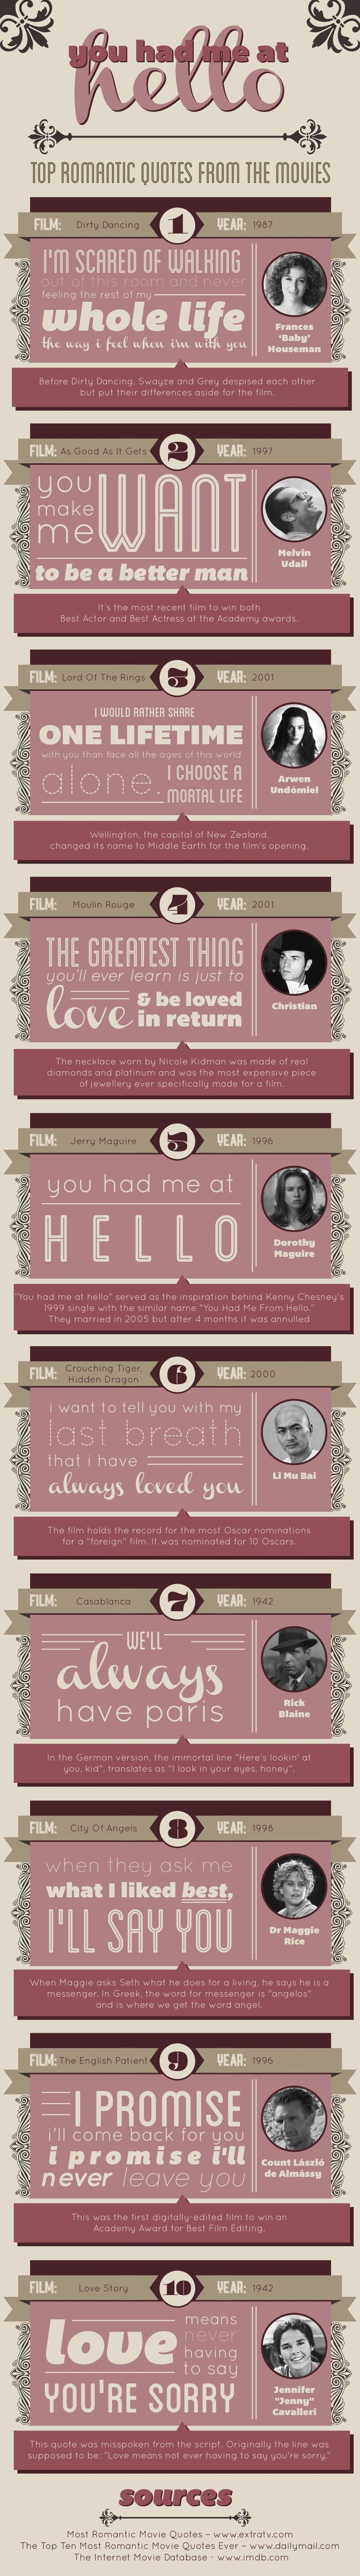 Top #Love #Quotes From the #Movies #Infographic